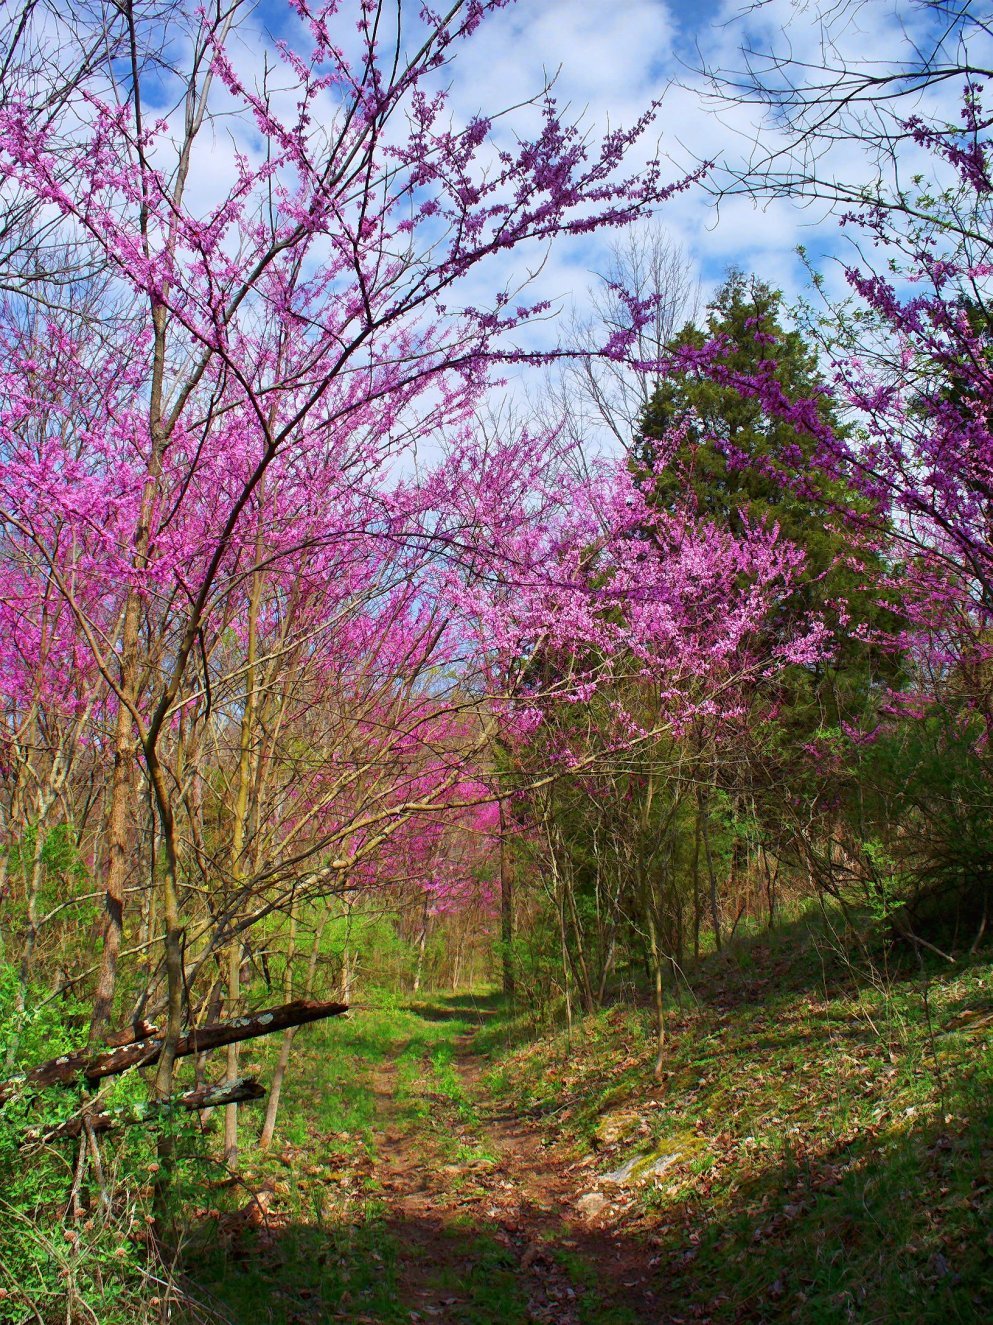 indiana redbud trees in valley by creek